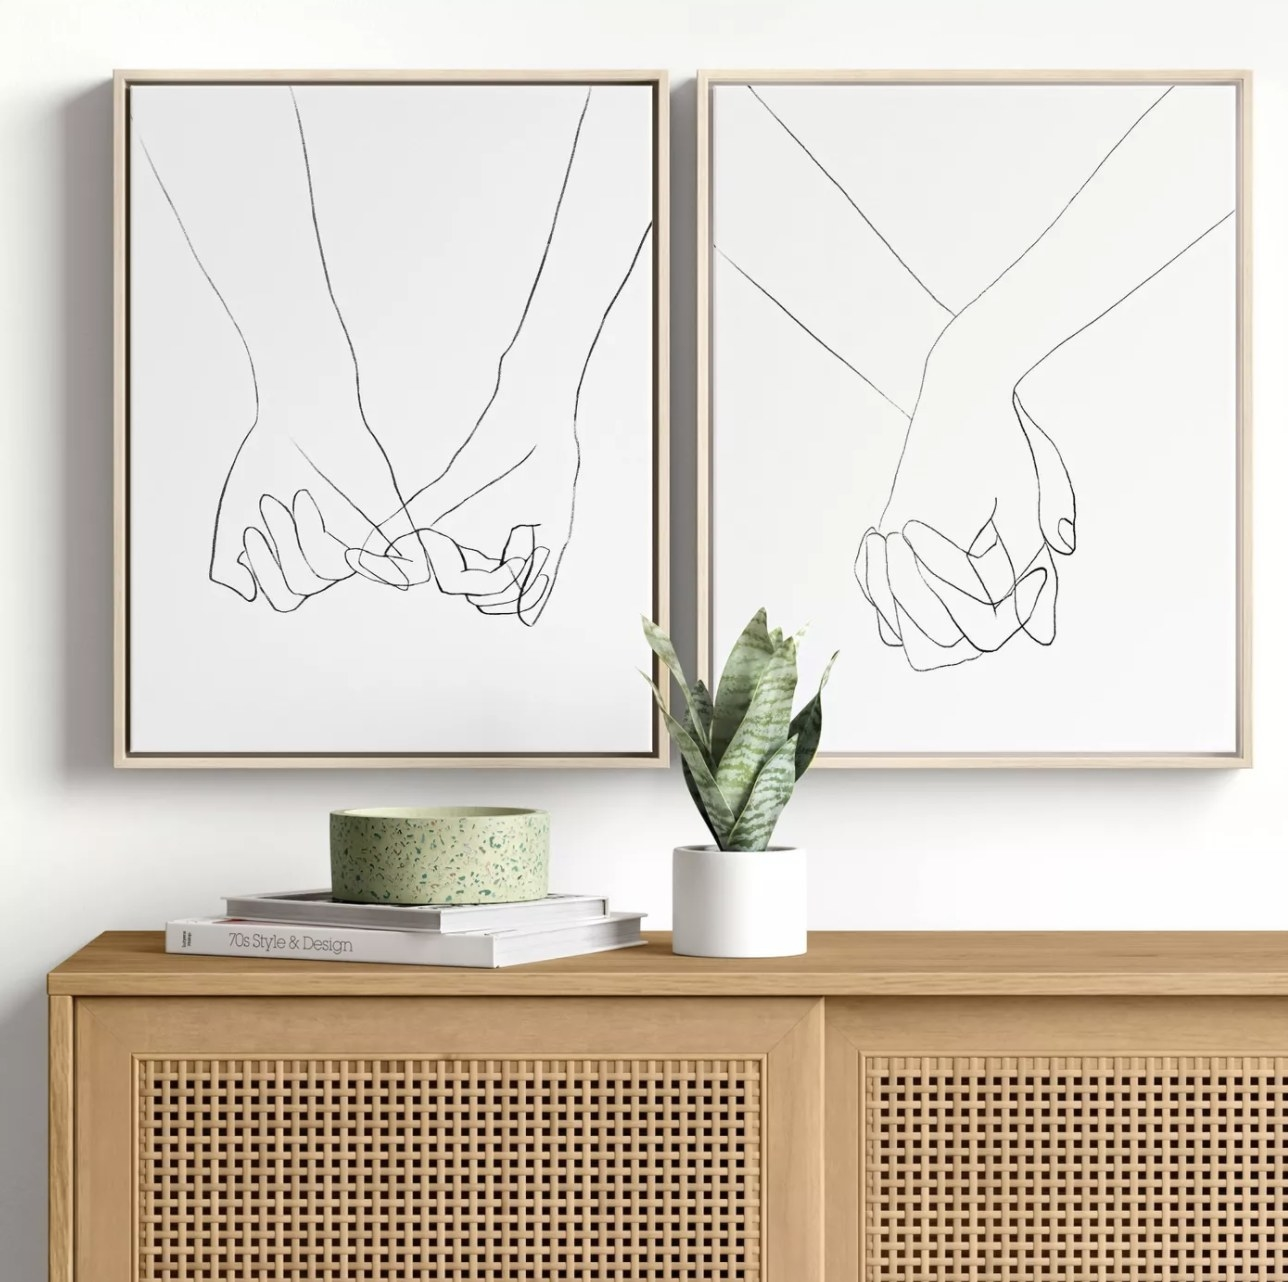 Hands wall décor hung in living room